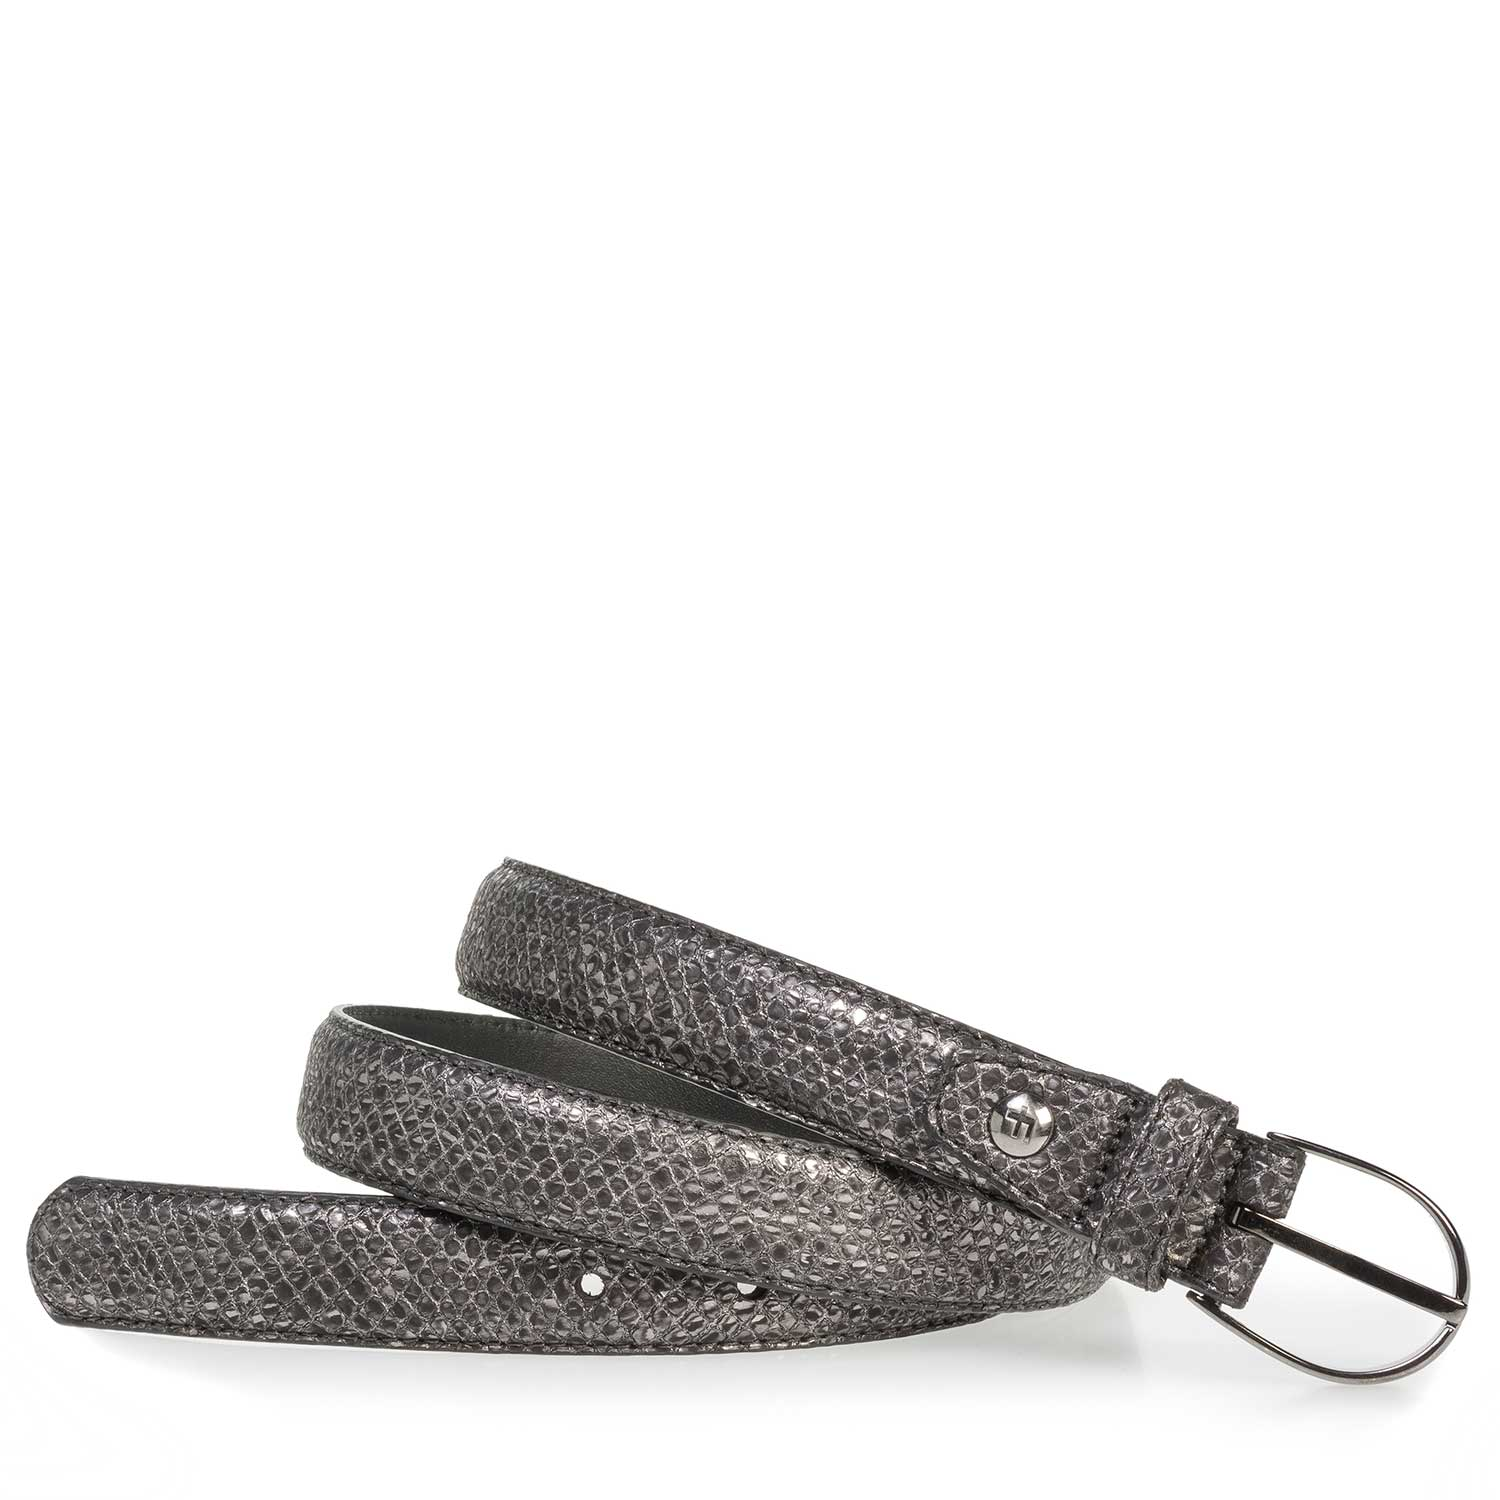 75813/43 - Grey leather belt with metallic print